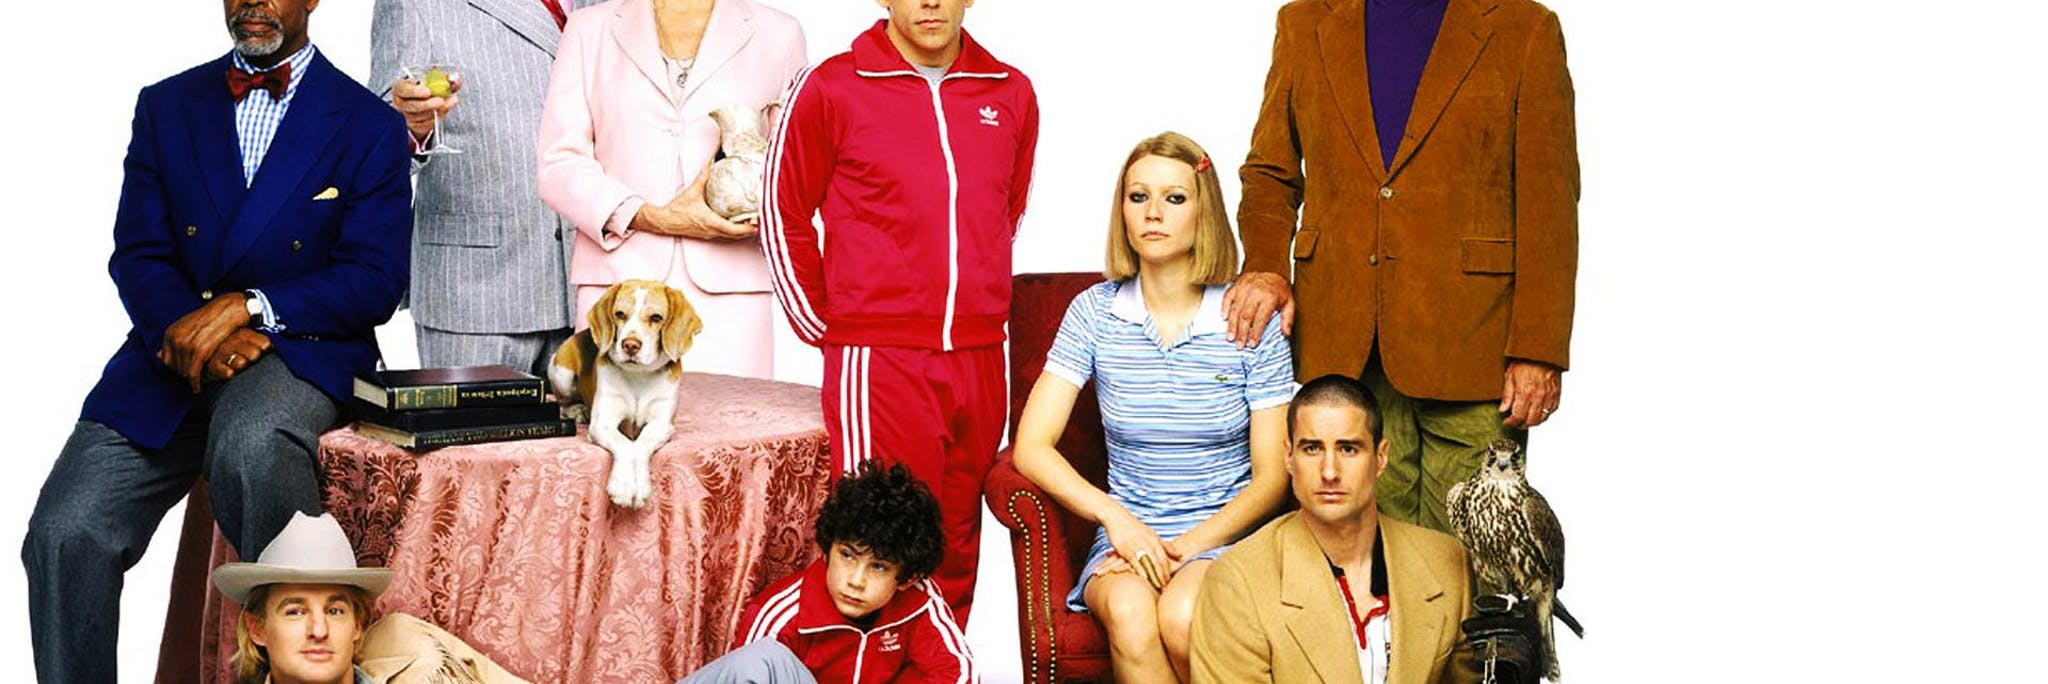 the royal tenenbaums soundtrack tunefind the royal tenenbaums